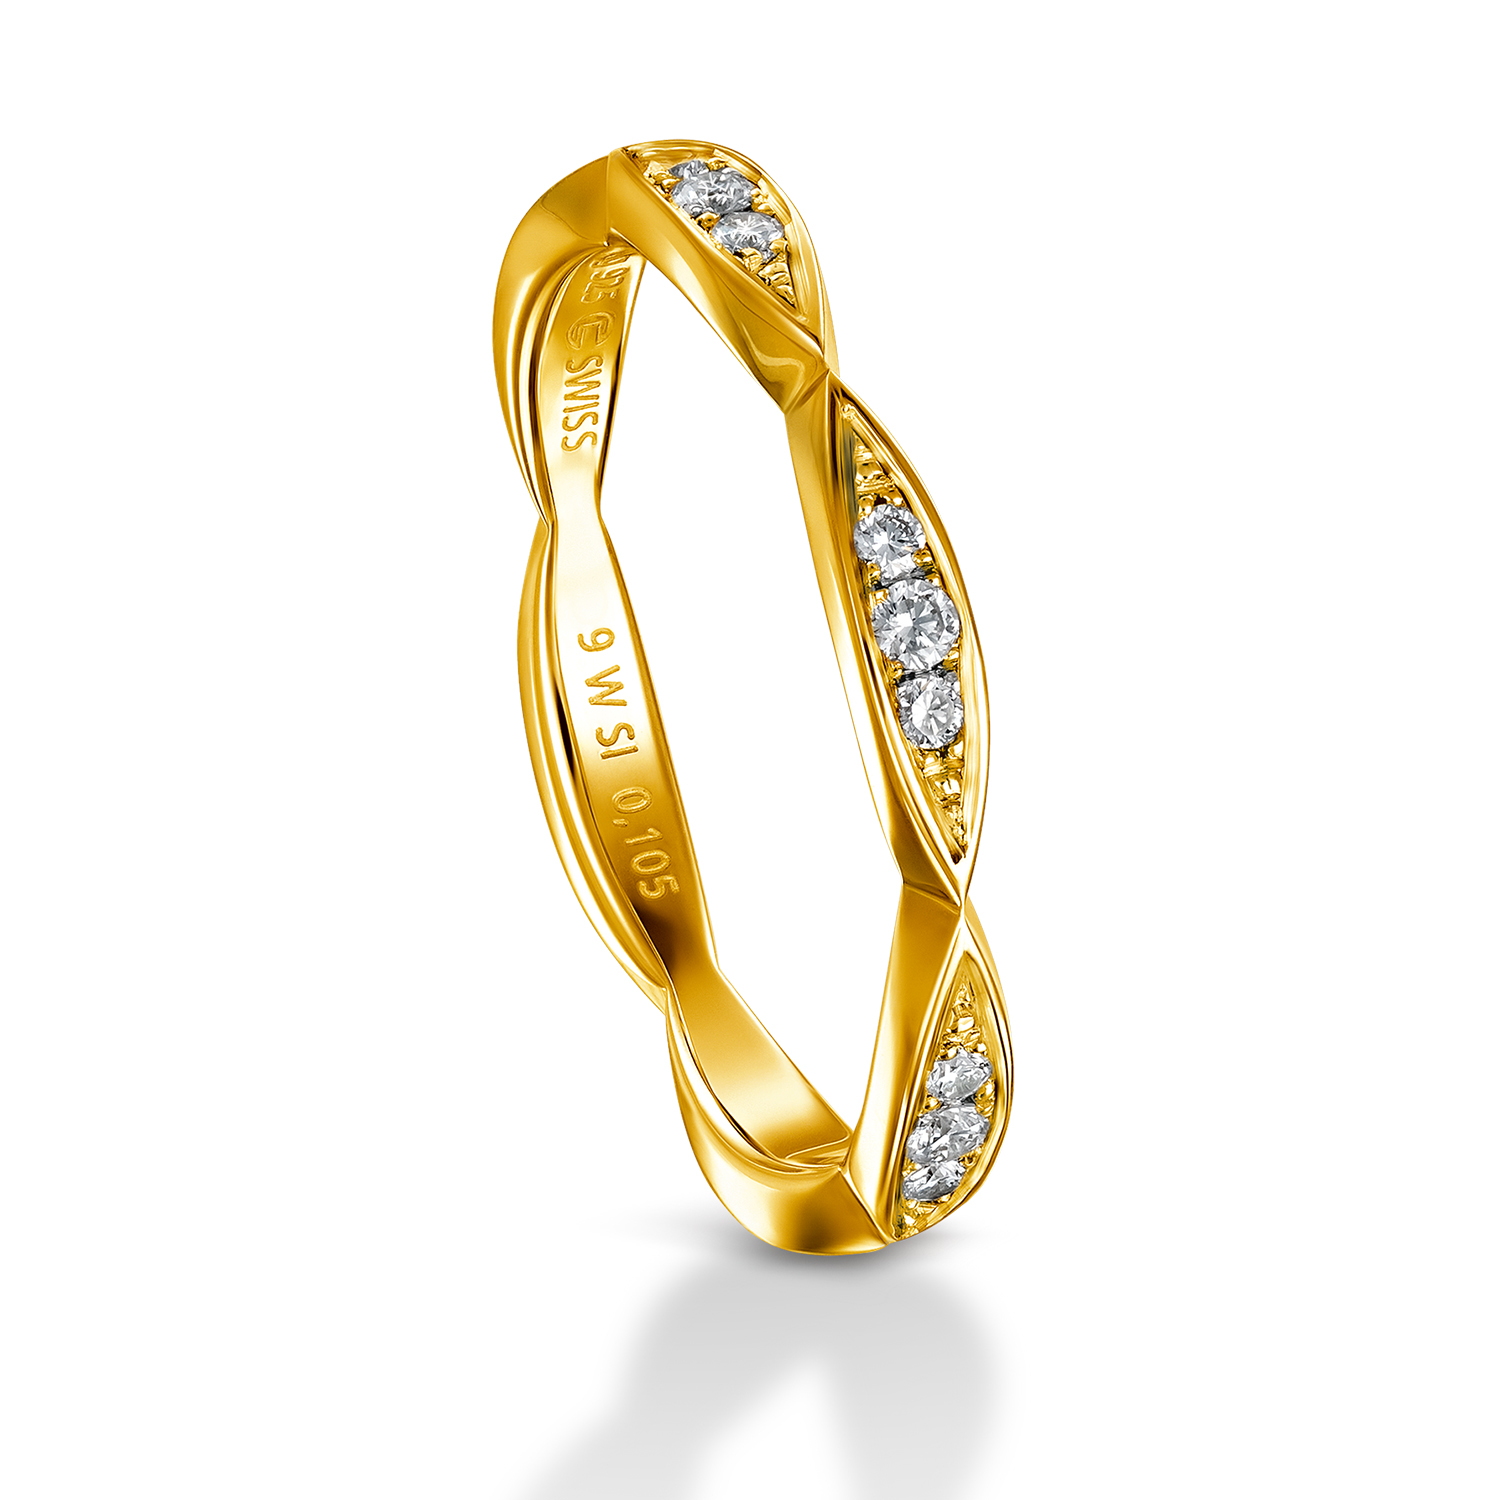 Wedding bands, Trauringe, Gold, Platin, Diamanten, Heiraten, diamond rings, diamonds, jewellery, precious